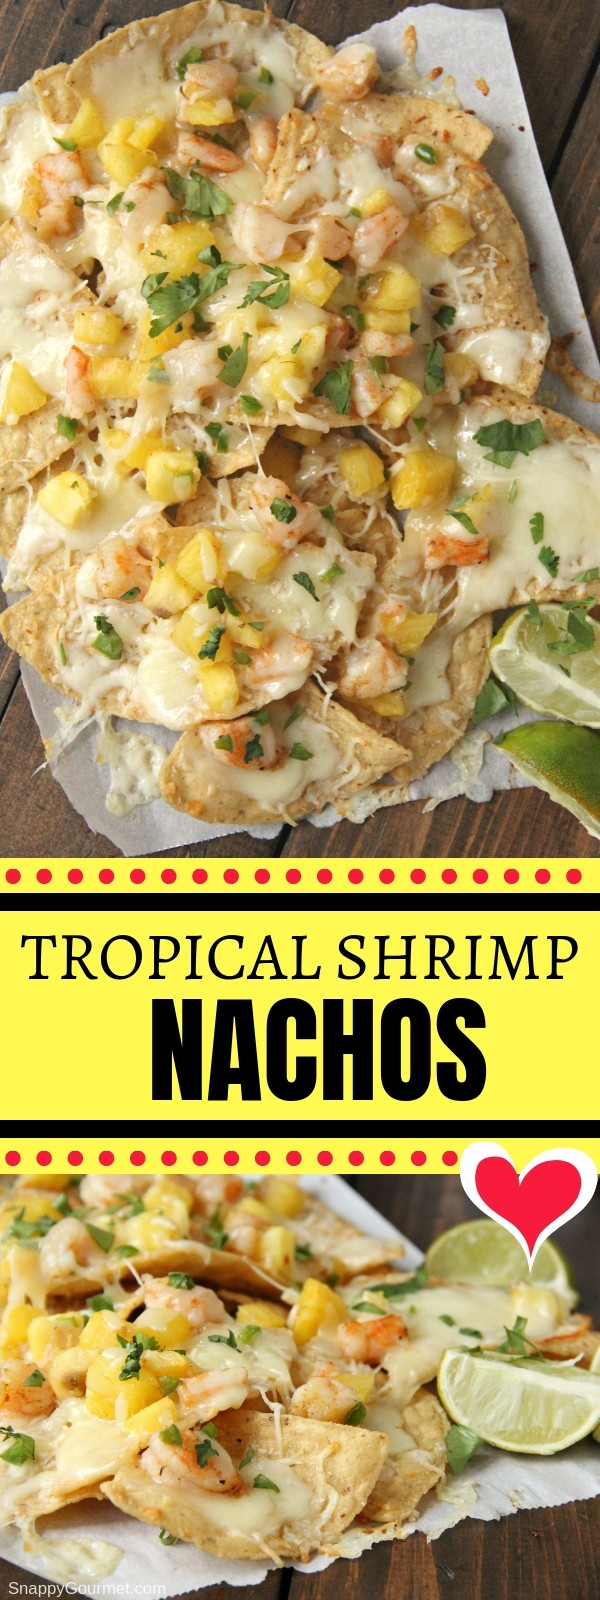 shrimp nacho collage